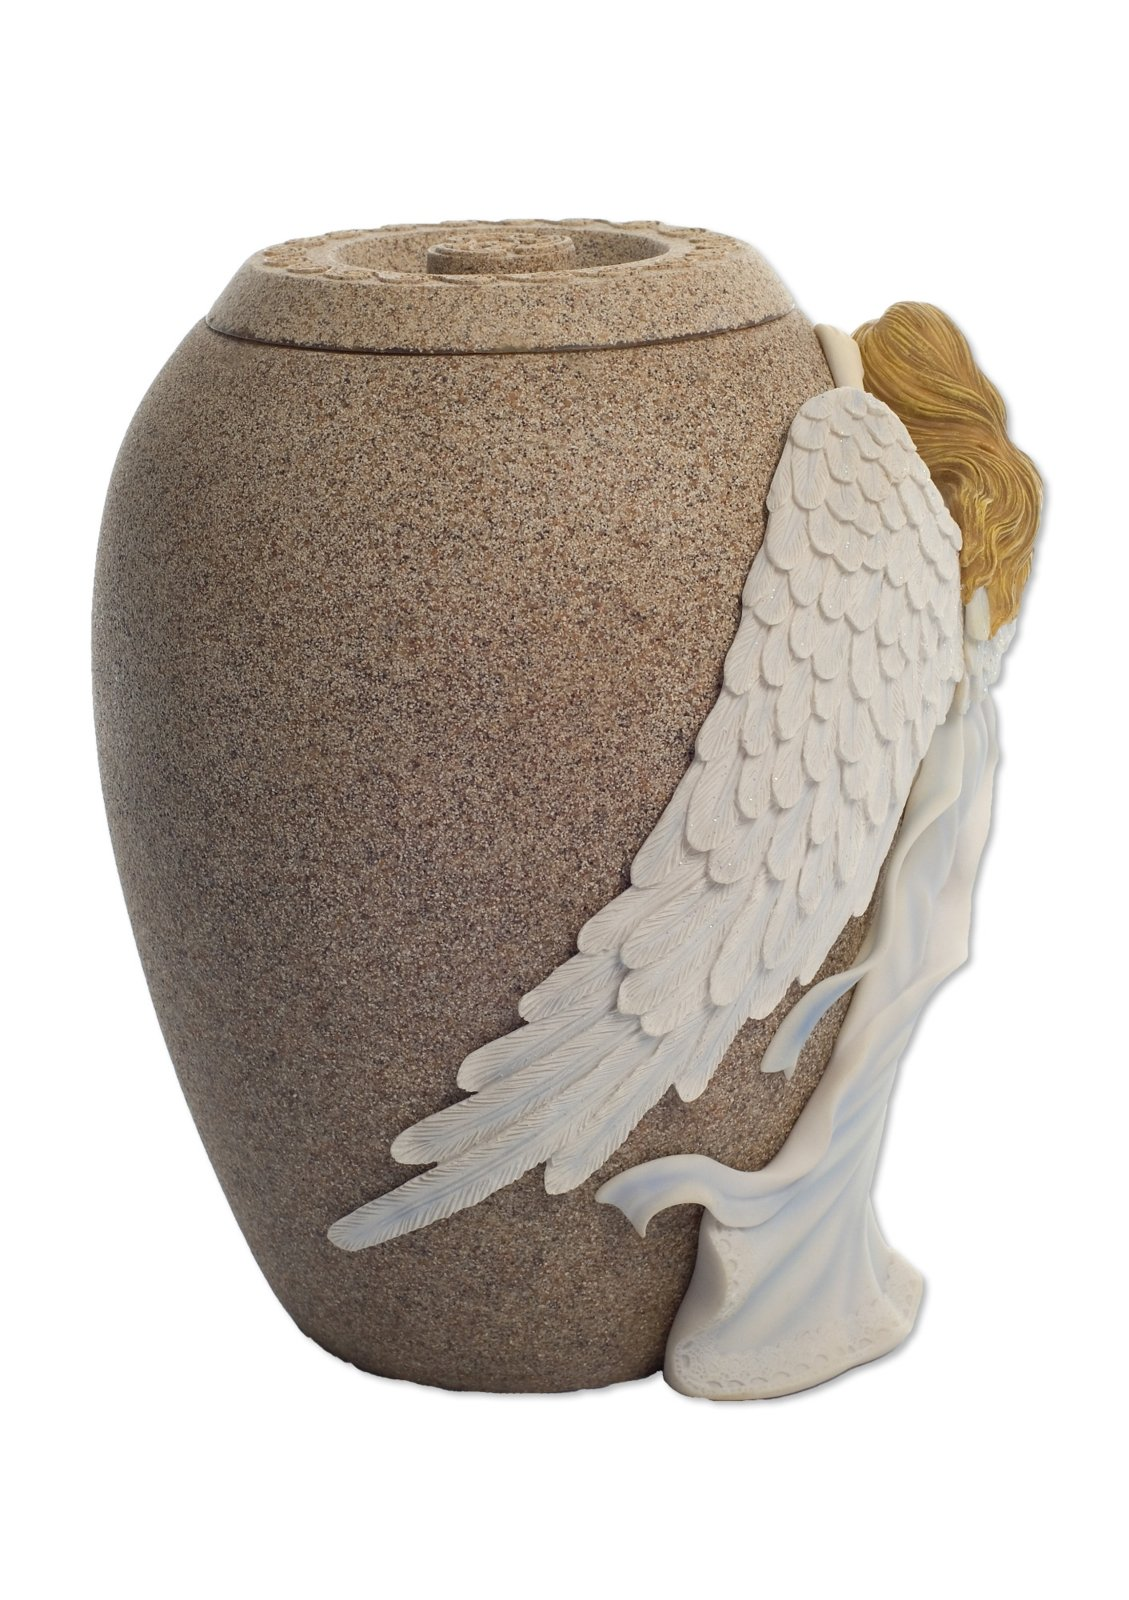 Angelstar Angel's Embrace Hand-Painted Angel, 10-1/2-Inch, Sandstone Finish, 230 Cubic Inch